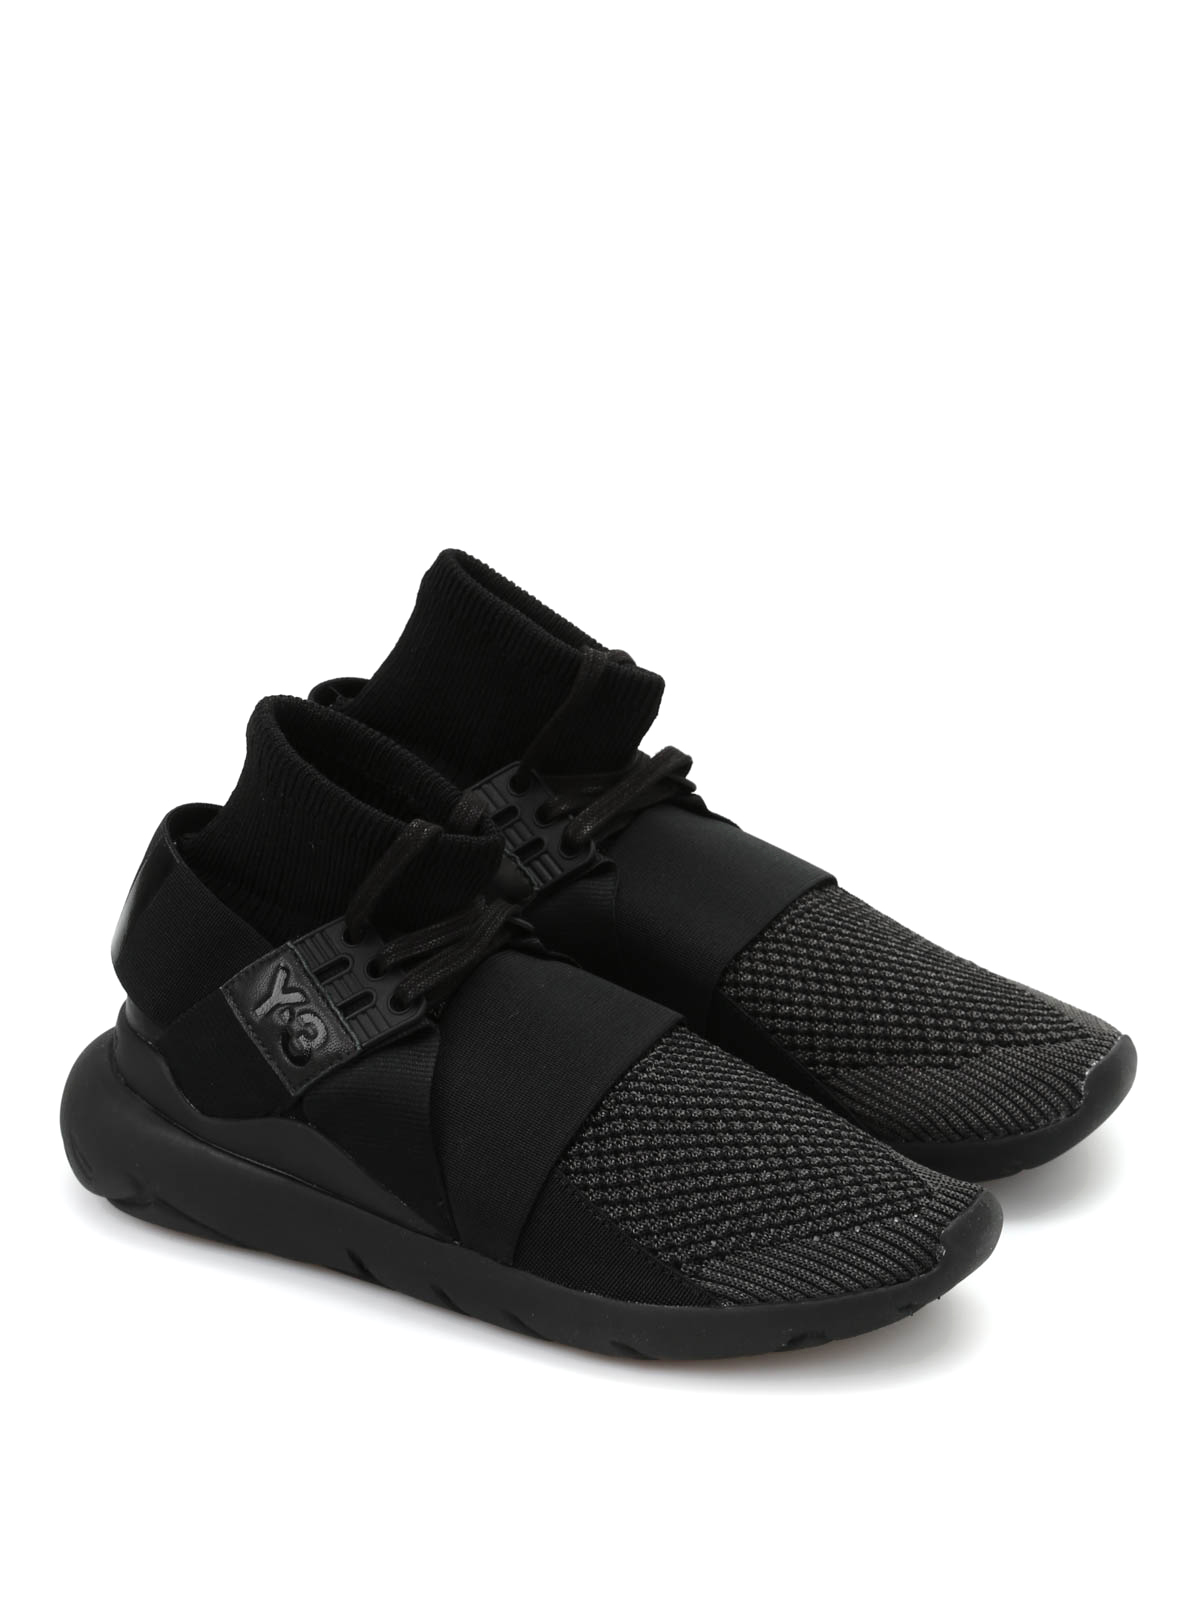 9092975f8e9d5 Adidas Y-3 - Y-3 Qasa Elle Lace Knit sneakers - trainers ...